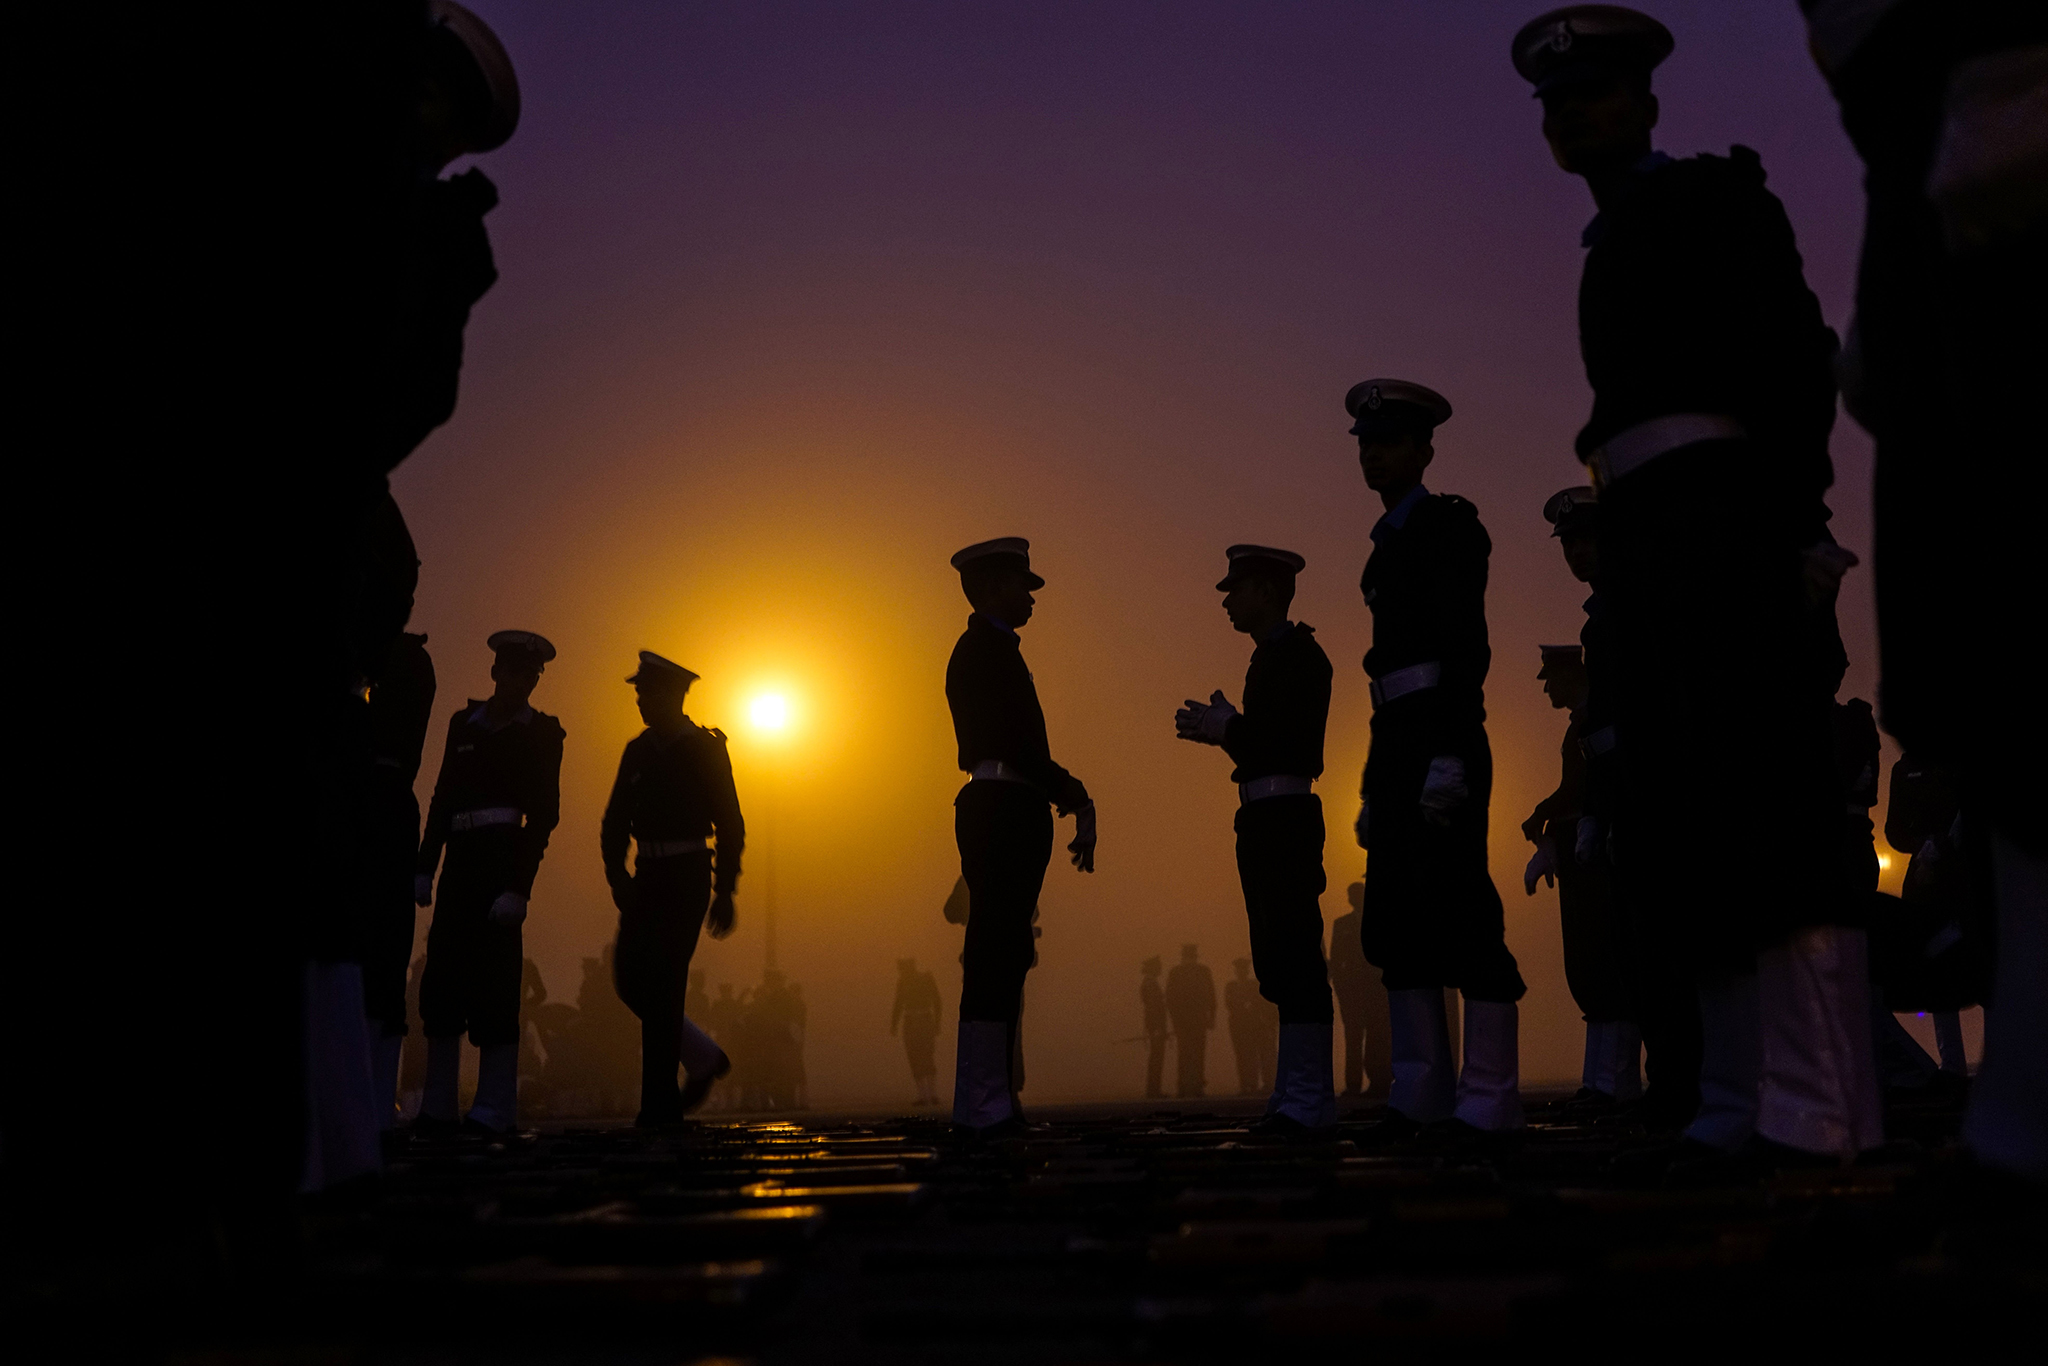 Indian military personnel prepare to march as they rehearse for the forthcoming Republic Day parade at Rajpath in New Delhi on January 3, 2017. India will celebrate its 68th Republic Day on January 26 with a large military parade.  / AFP / CHANDAN KHANNA        (Photo credit should read CHANDAN KHANNA/AFP/Getty Images) *** BESTPIX ***